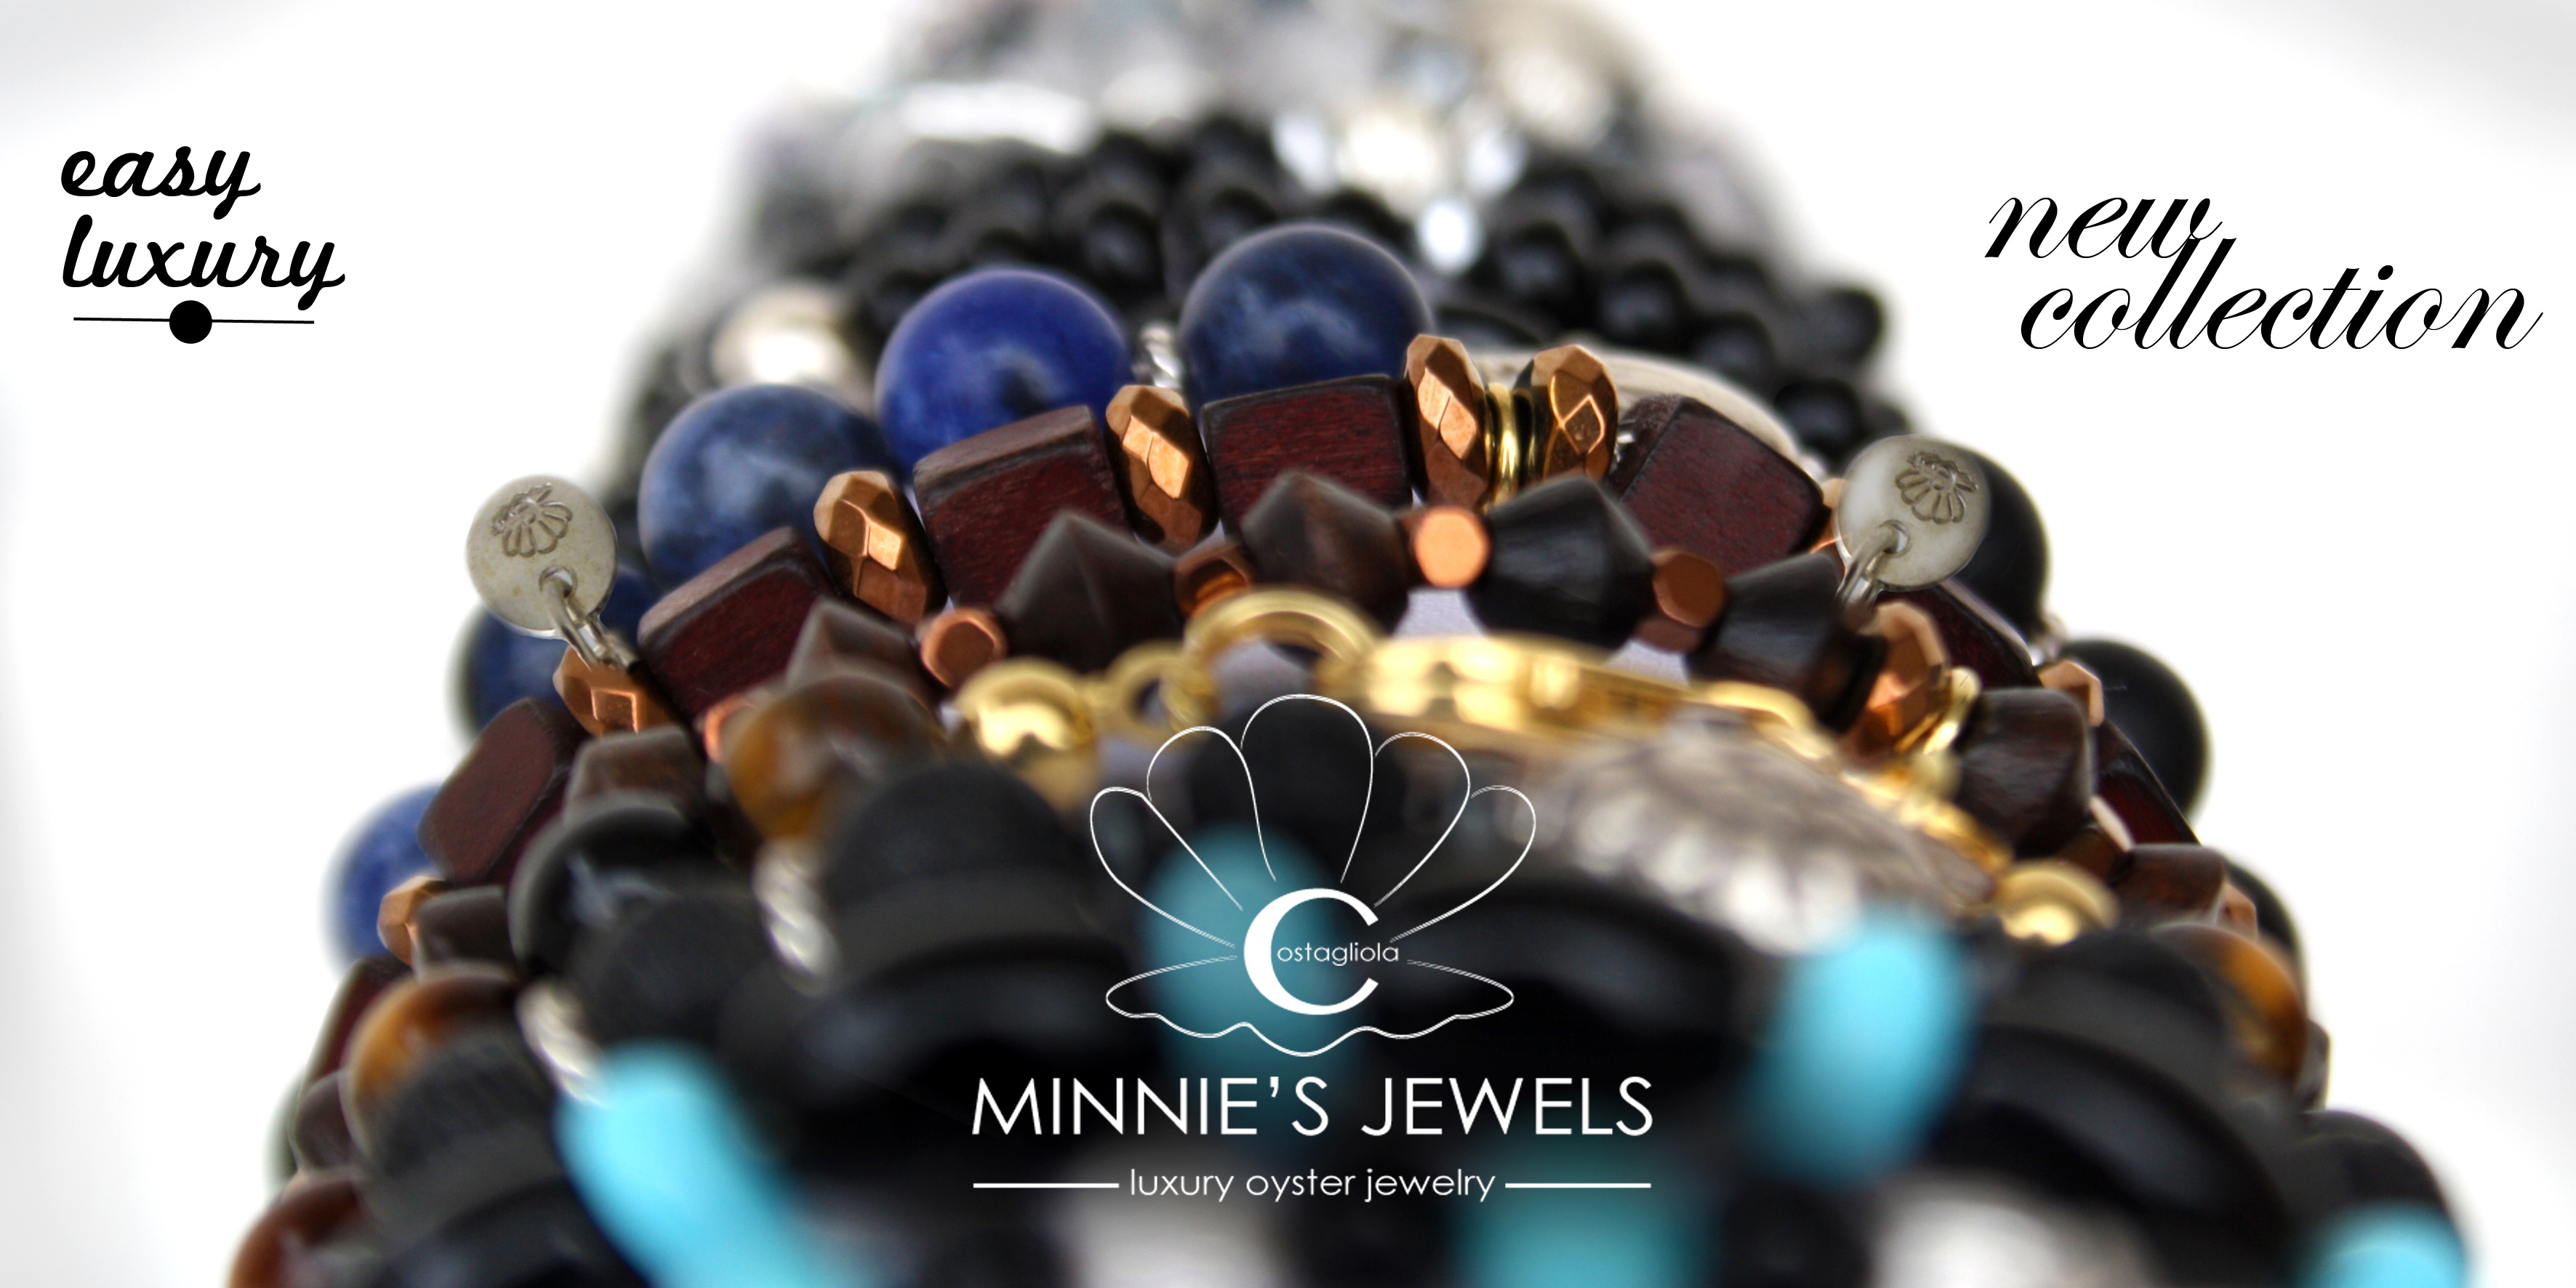 minnies jewels